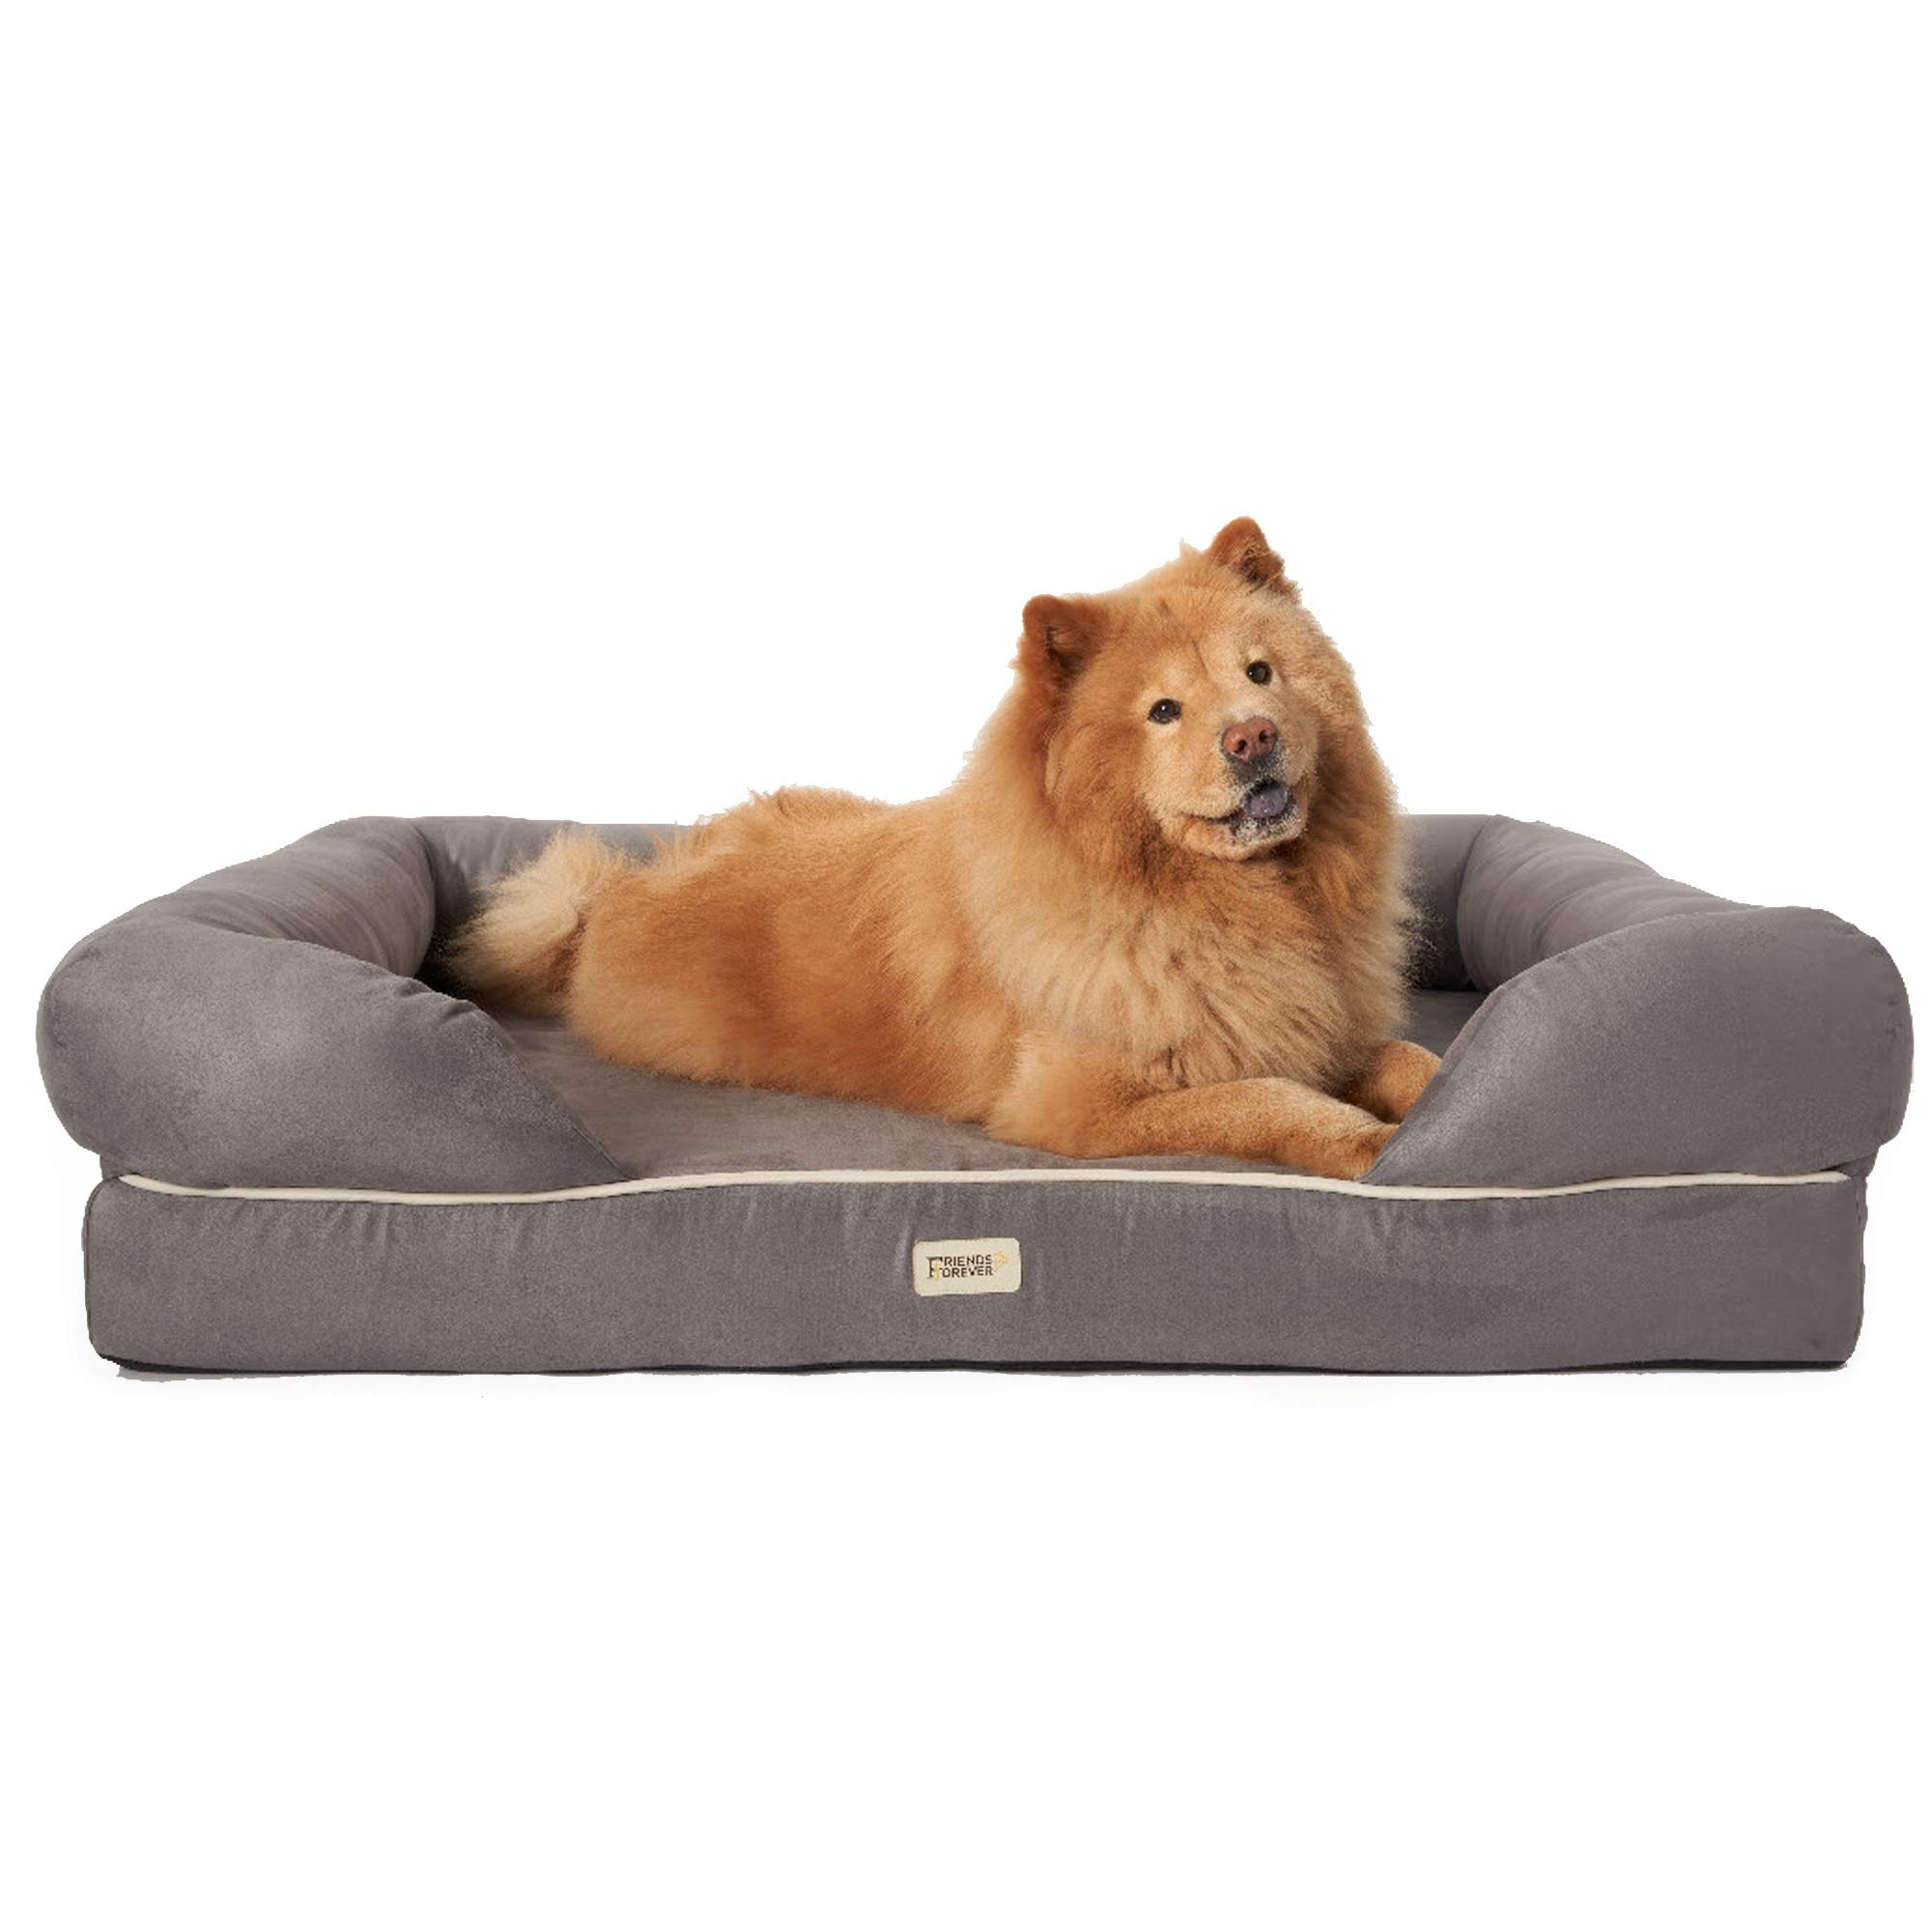 Friends Forever Orthopedic Dog Bed Lounge Sofa Removable Cover 100% Suede 4'' Mattress Memory-Foam Premium Prestige Edition 40'' x 50'' x 13'' Pewter Grey XXL